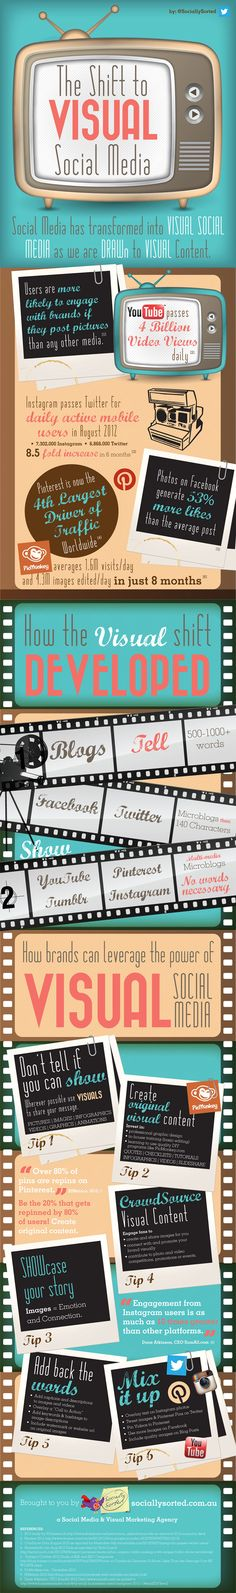 The Power Of Visual Social Media – 6 Marketing Tips For Brands [INFOGRAPHIC]